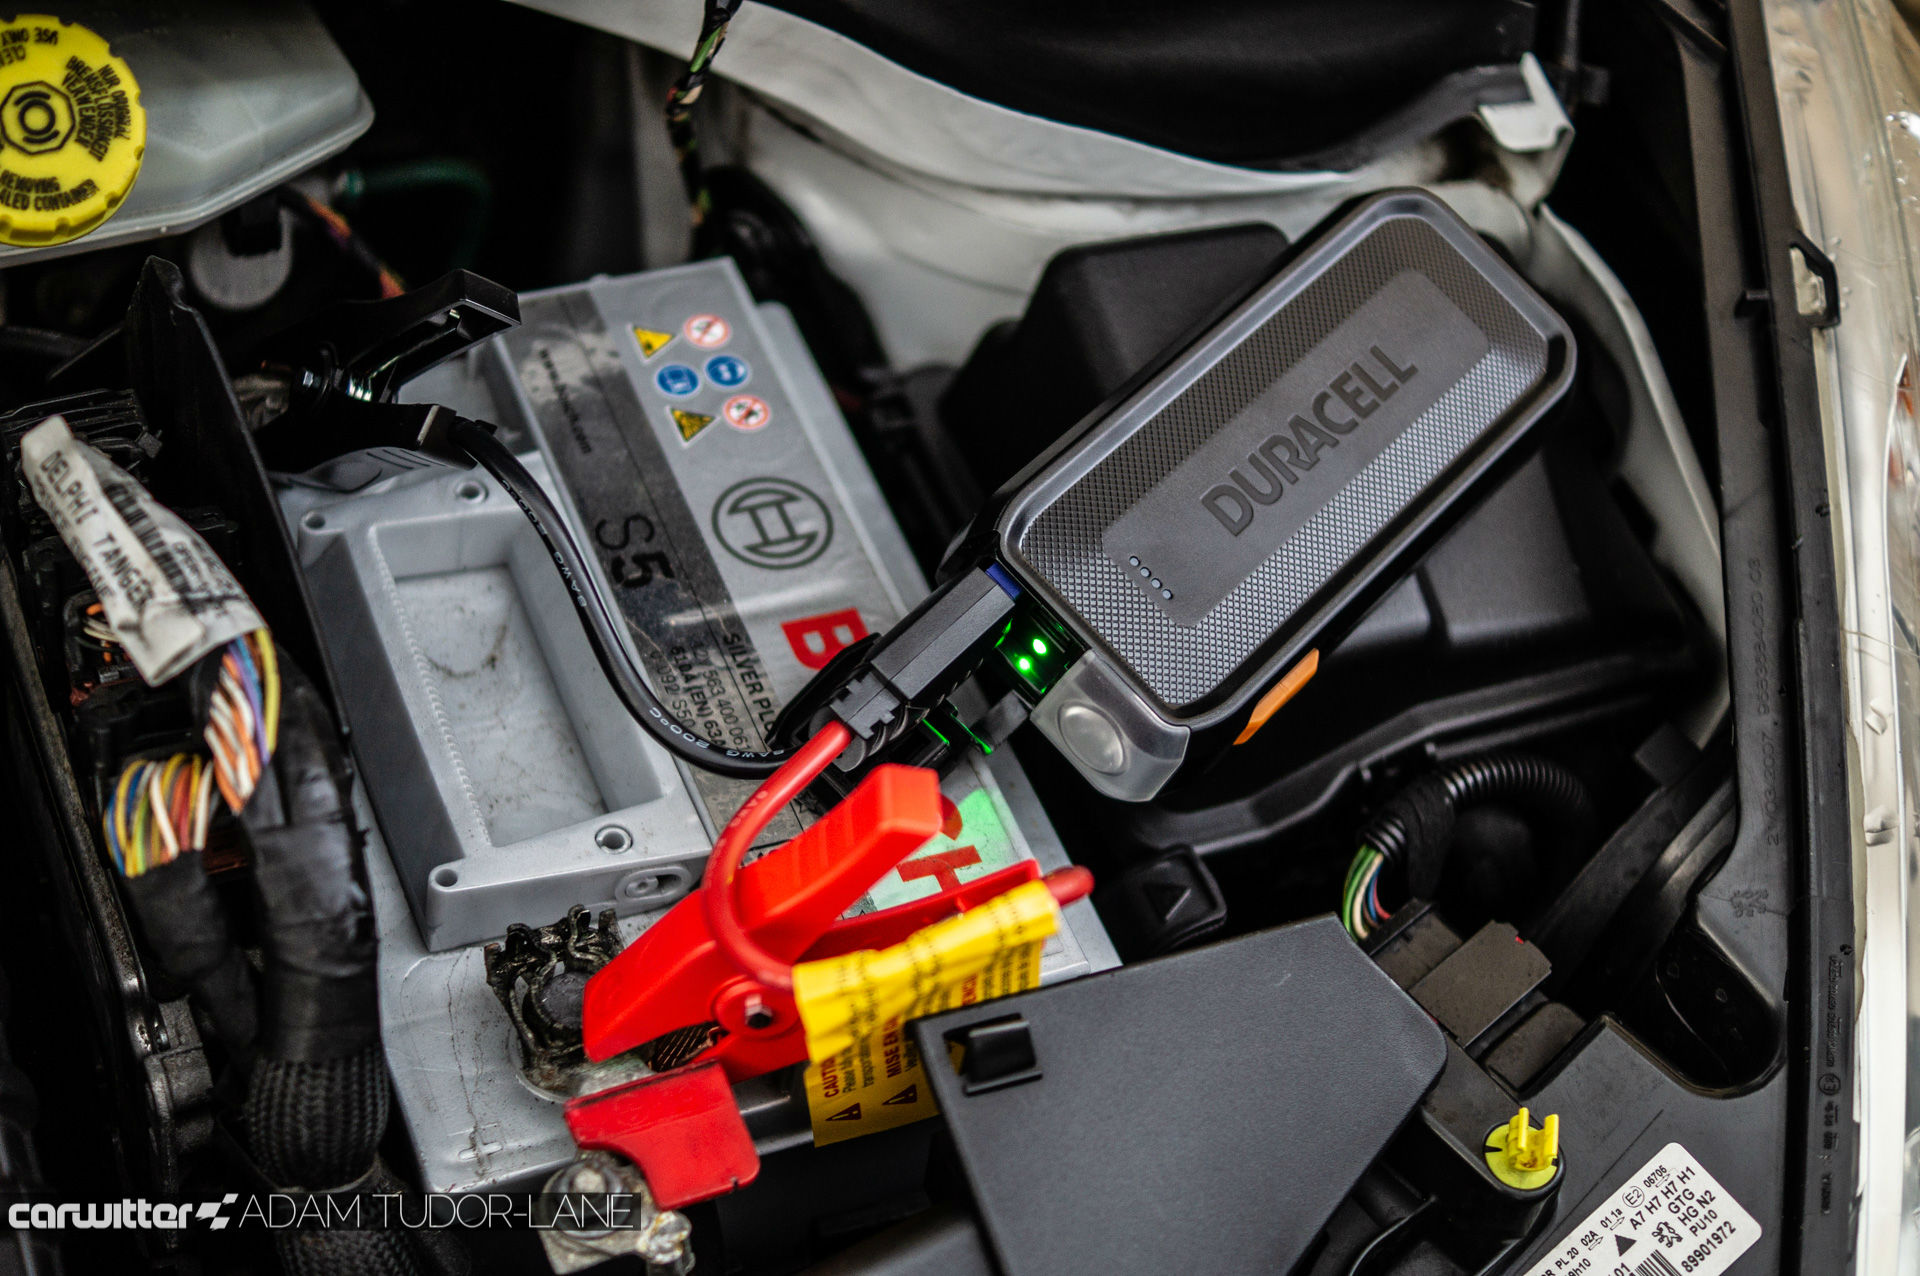 duracell lithium ion jump starter review - carwitter